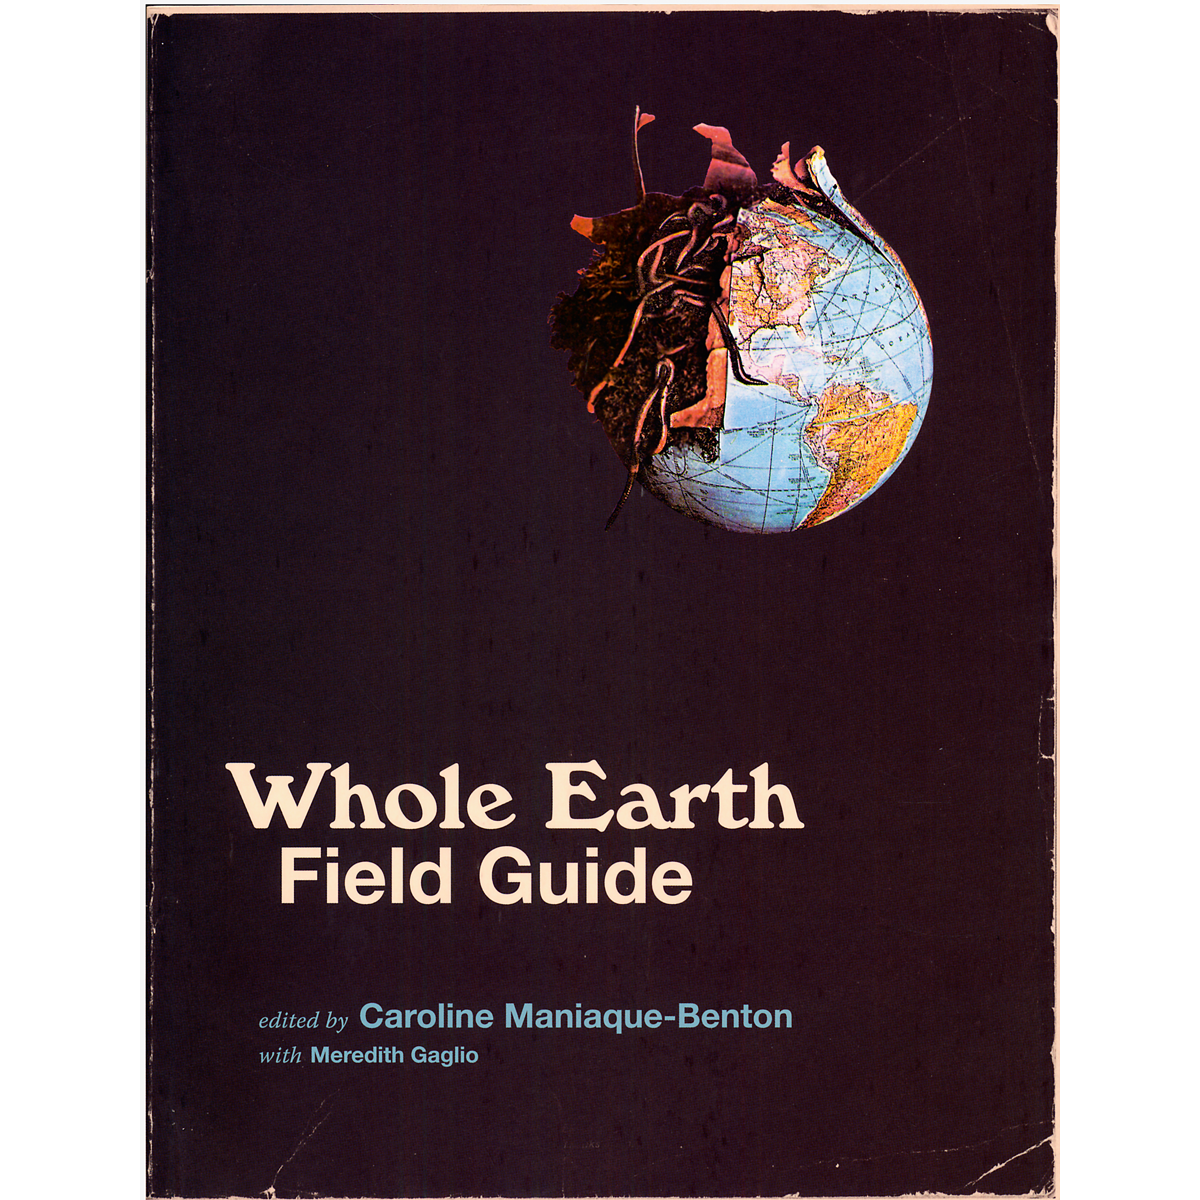 Whole Earth Field Guide